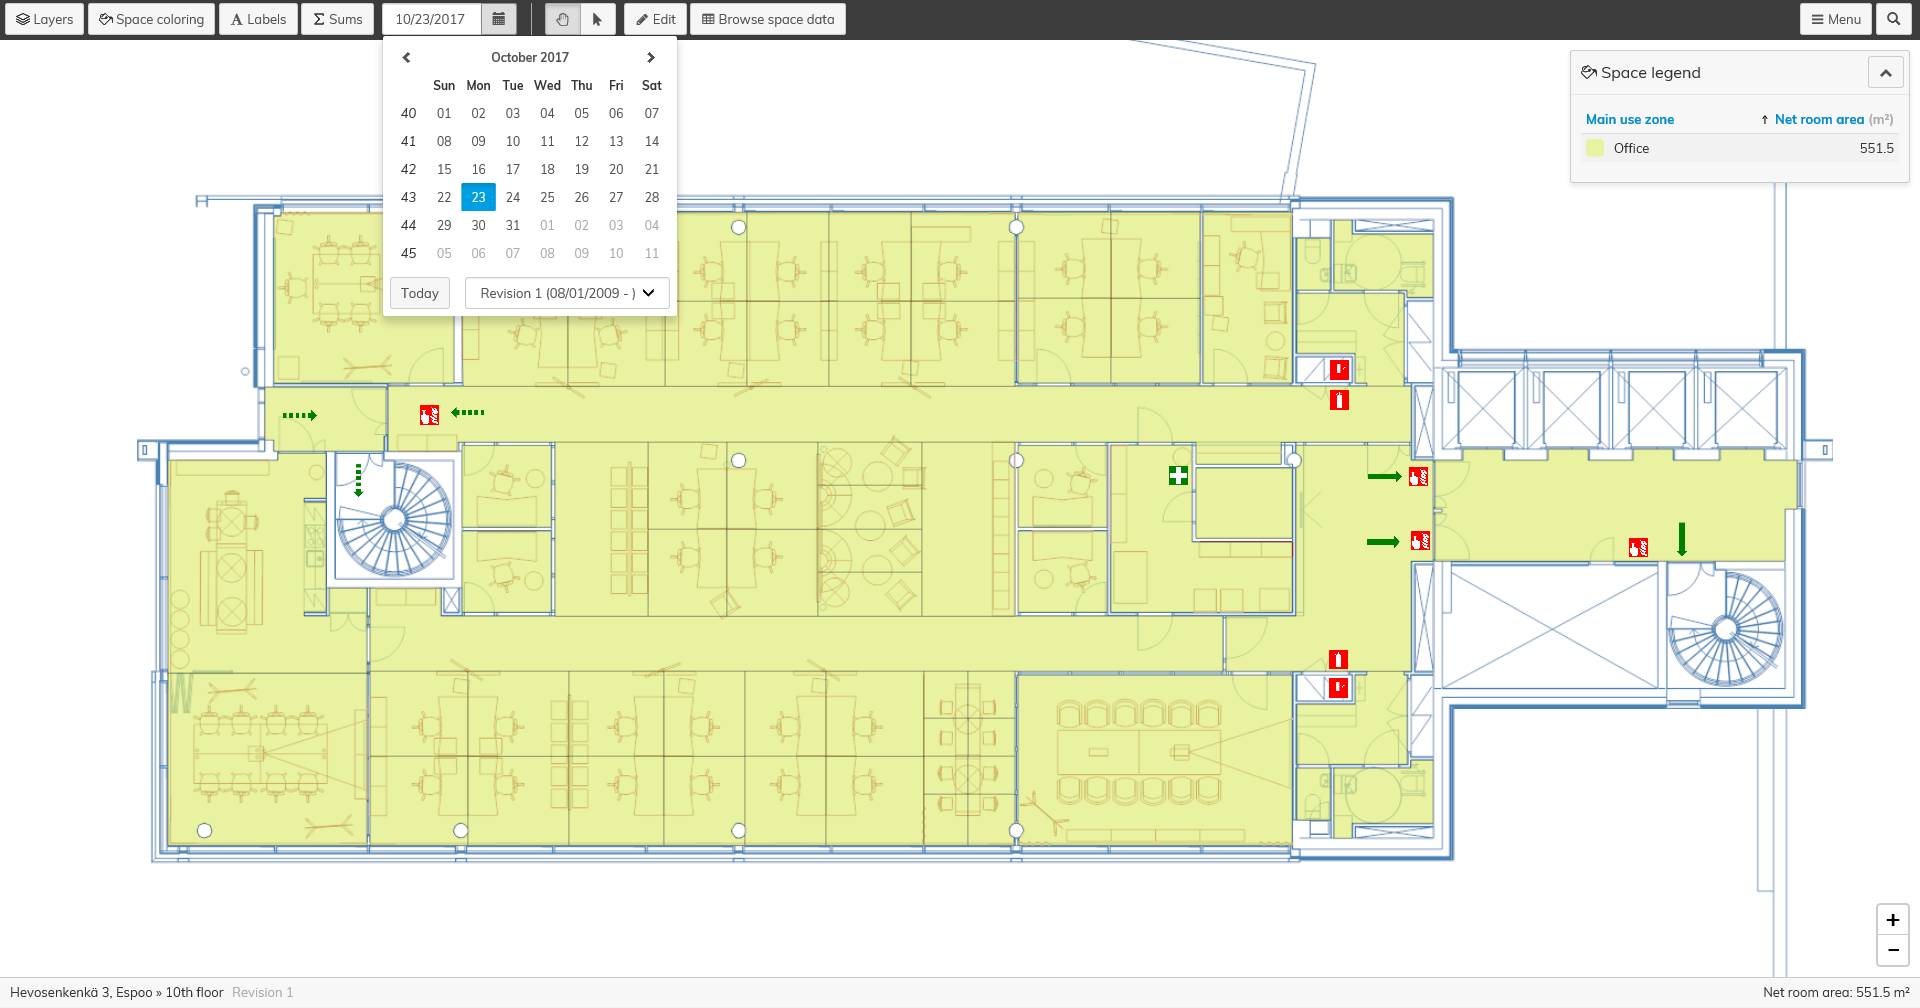 Use the Optimaze floor plans to allocate validity periods for spaces, classify operational sections and create rescue plan visuals.